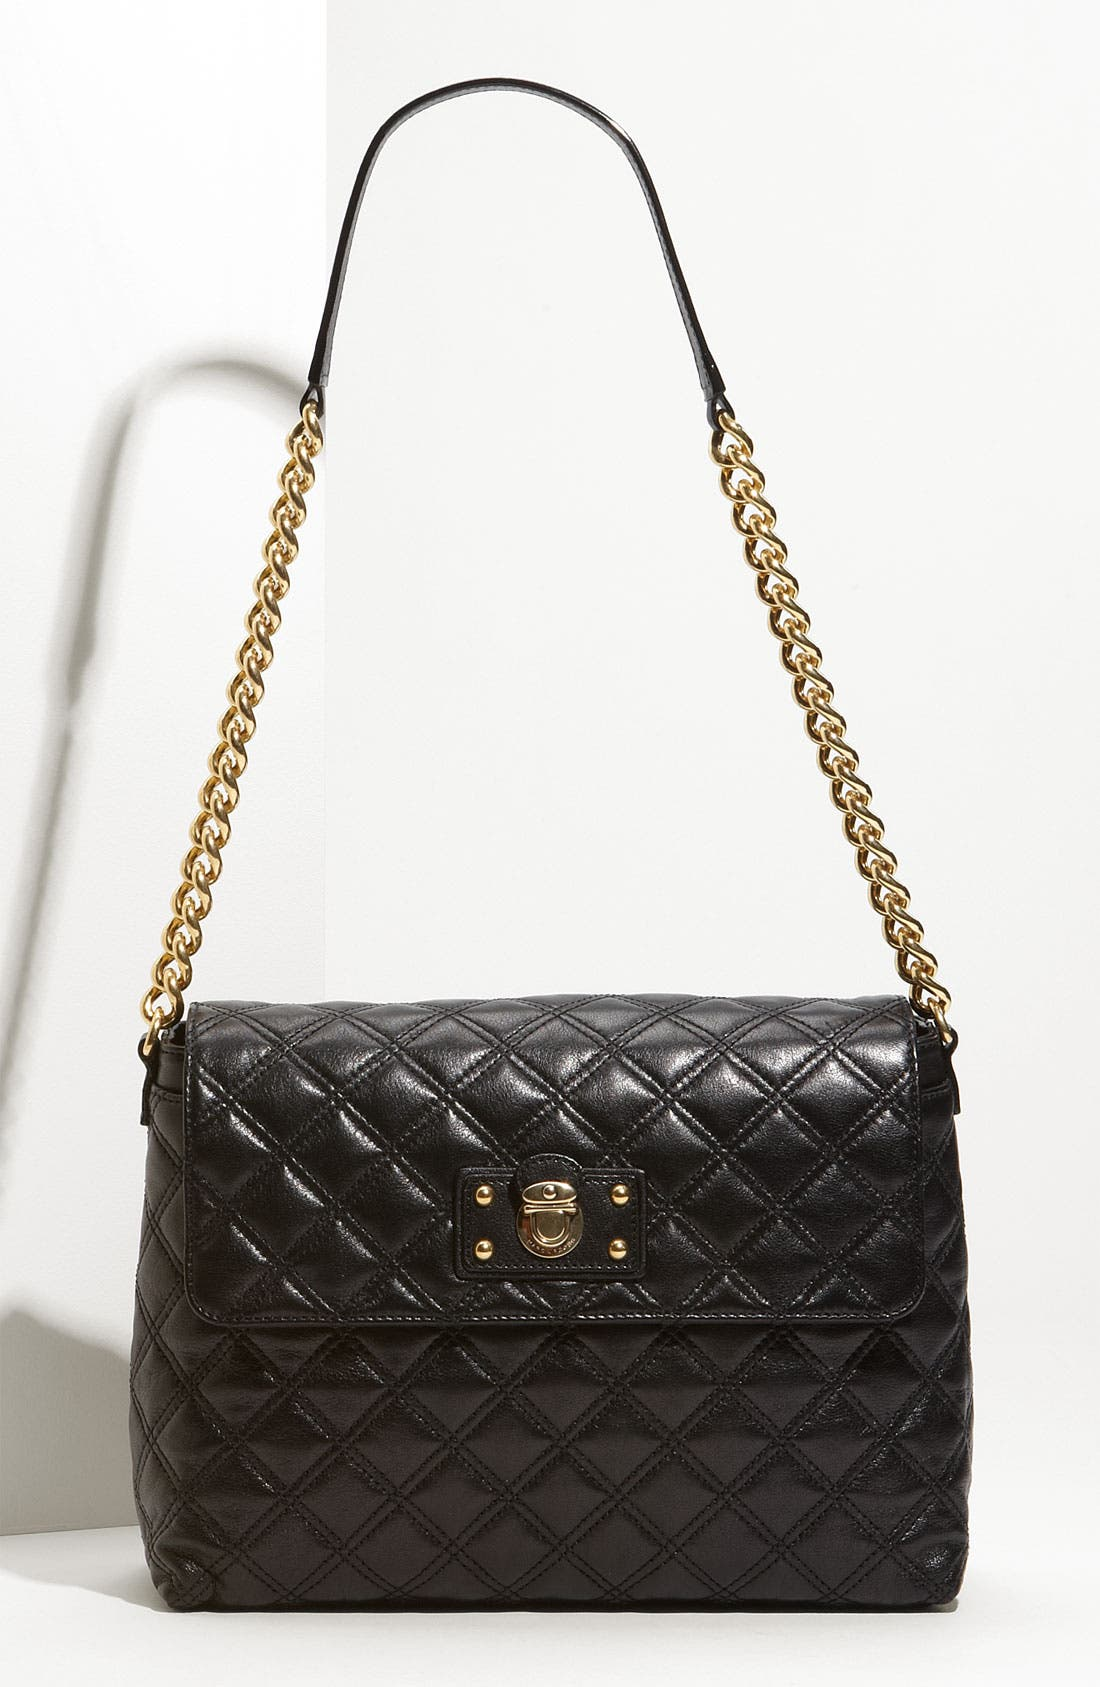 Main Image - MARC JACOBS 'Quilting - XL Single' Shoulder Bag